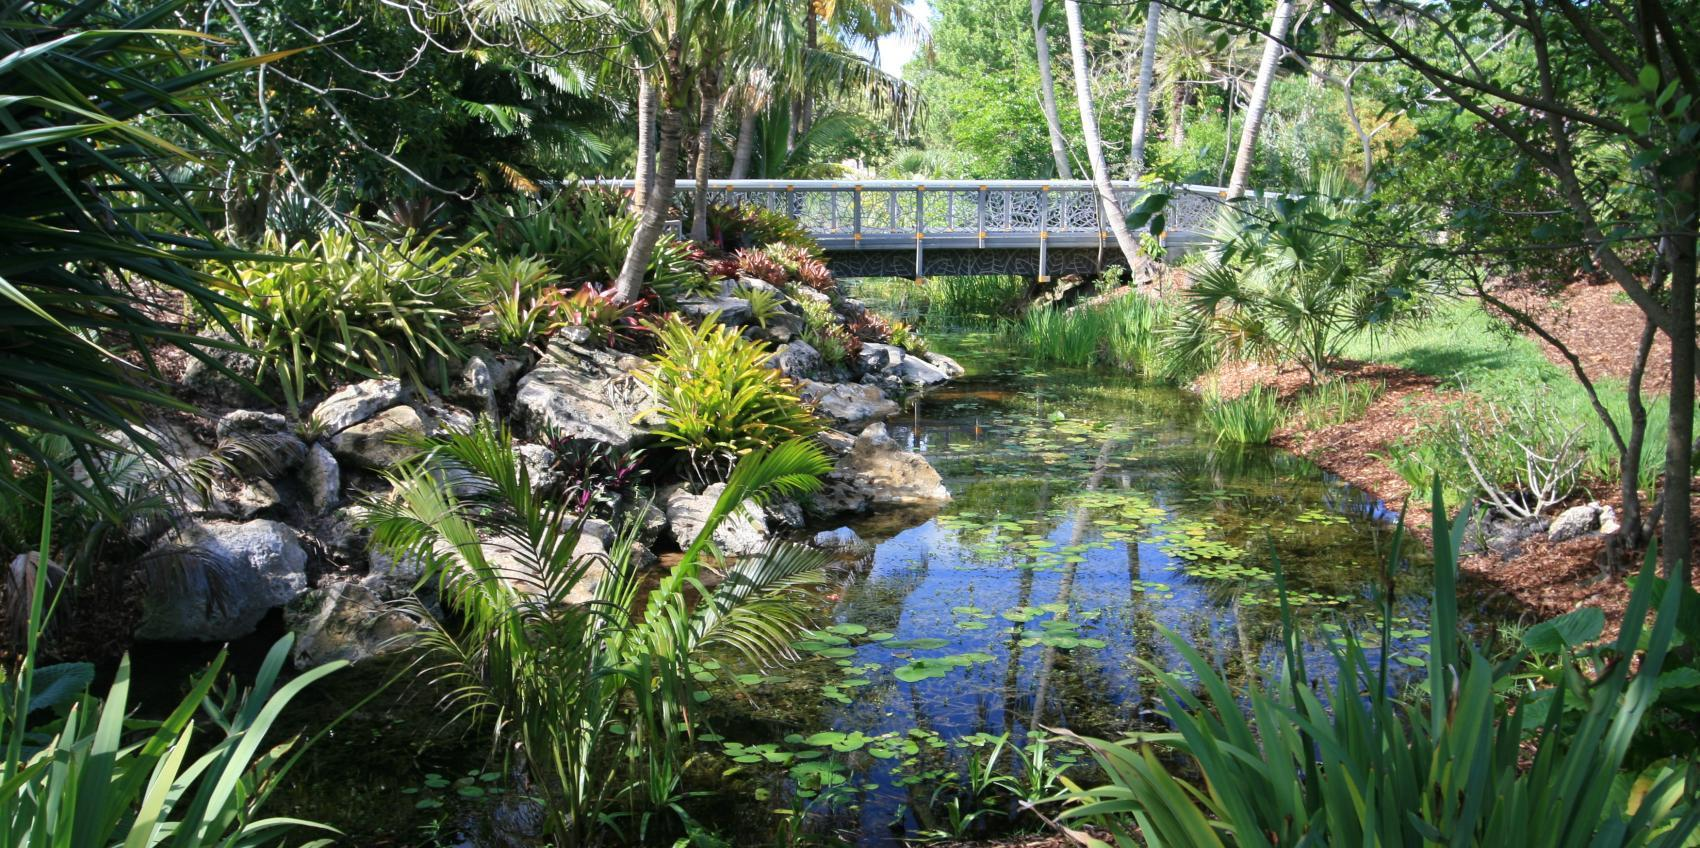 Incroyable Mounts Botanical Garden Is Palm Beach Countyu0027s Oldest And Largest Botanical  Garden. Its 14 Acres Of Gardens Contain More Than 2,000 Species Of Tropical  And ...